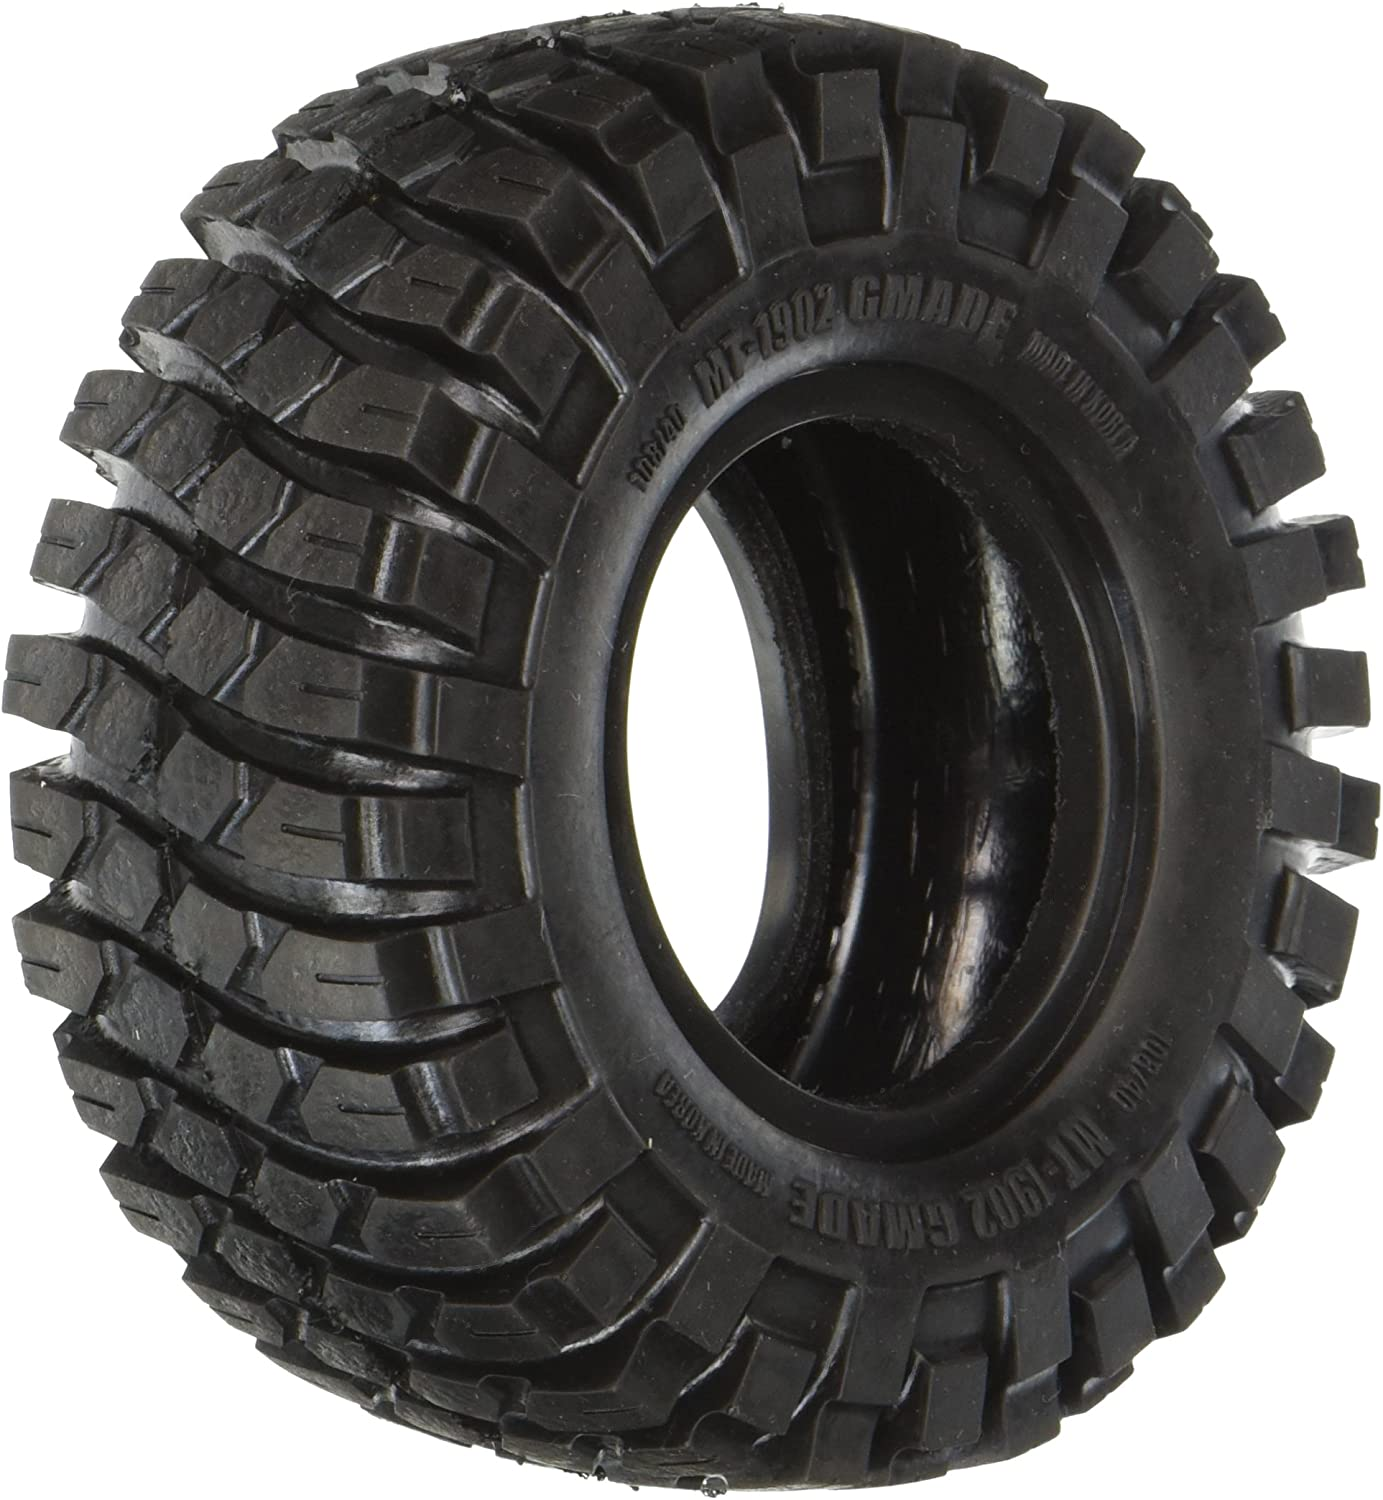 G-made 70244 1.9 MT 1902 Off-Road Tires